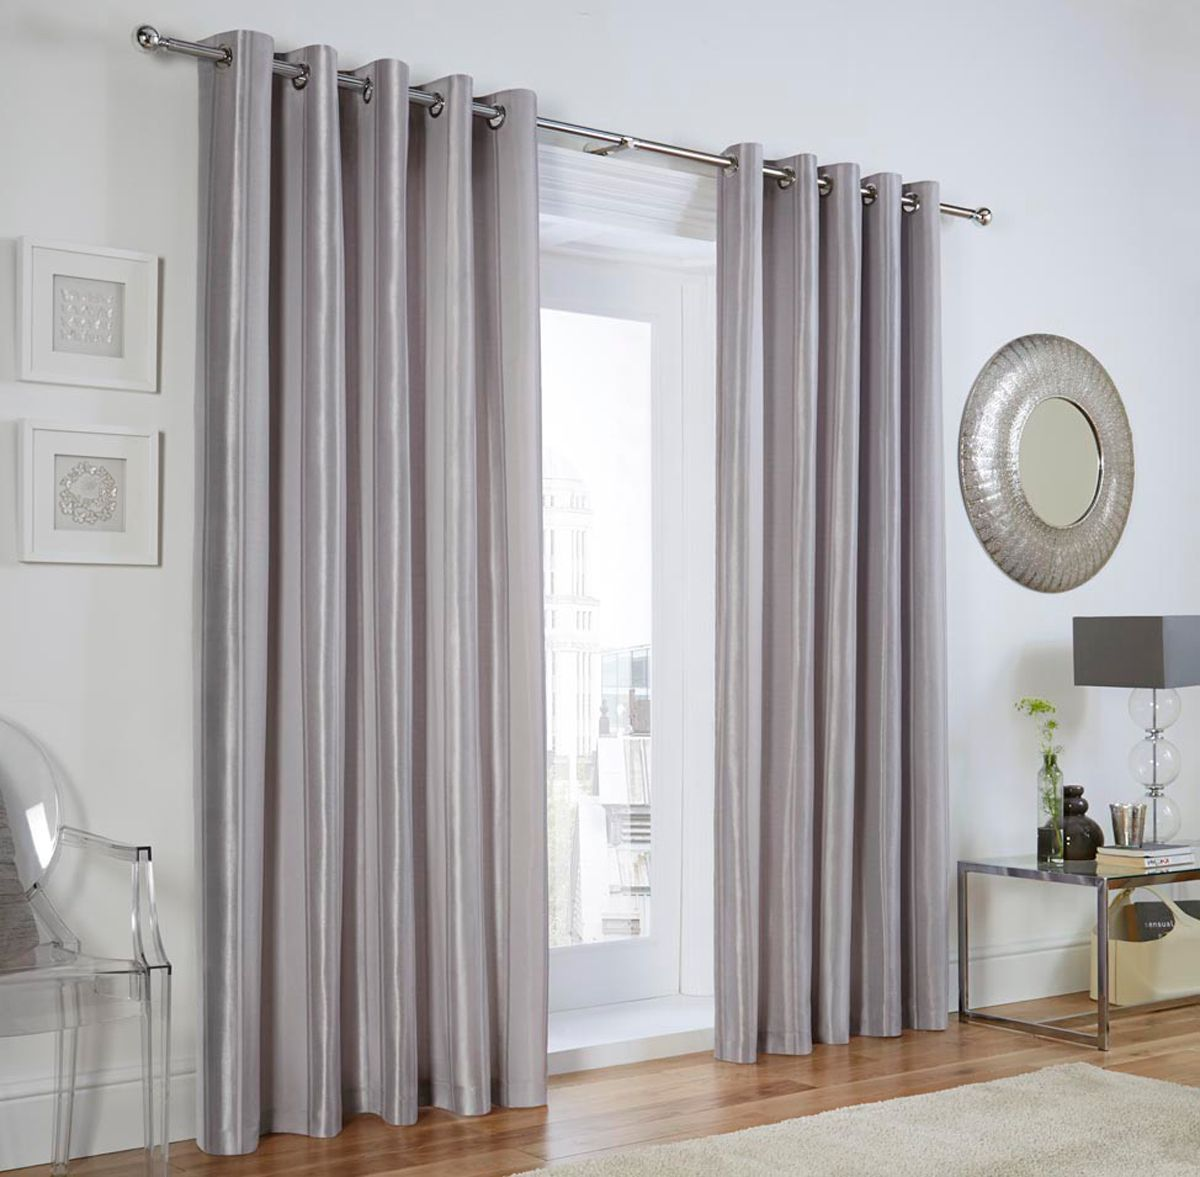 Linwood Eyelet Curtains In Silver Curtains Silver Grey Curtains Striped Curtains